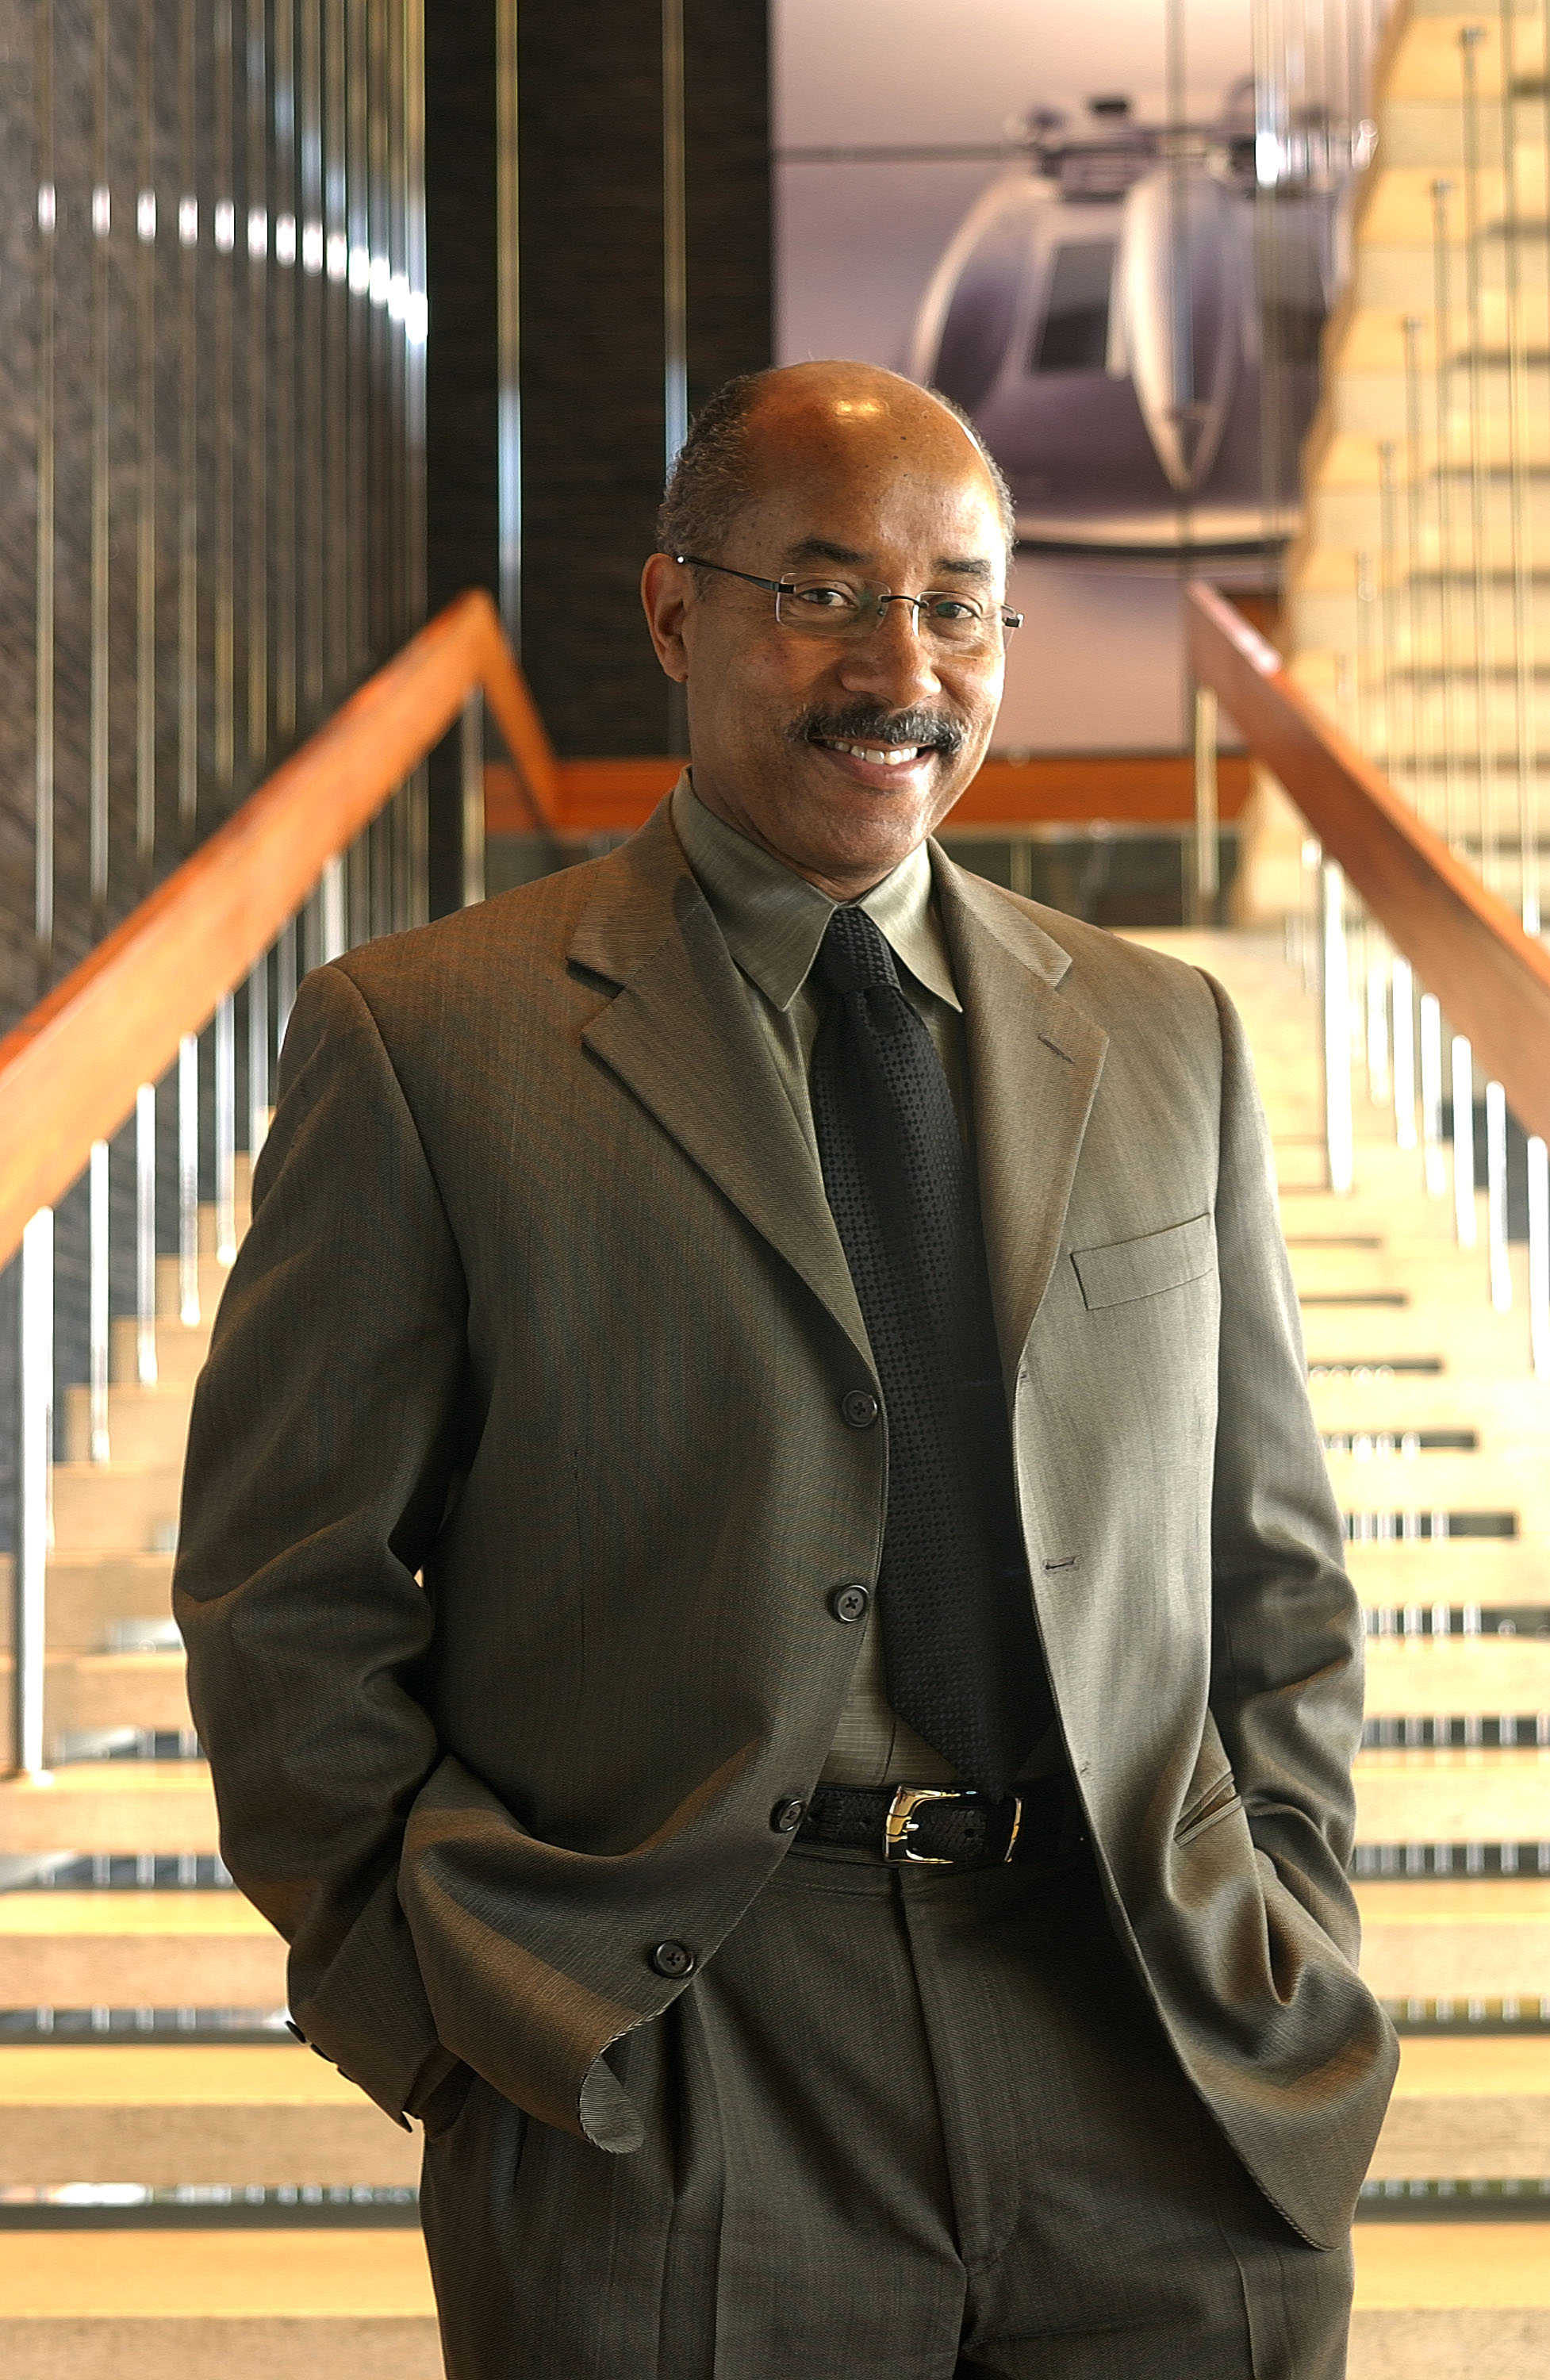 Ed Welburn, Vice President, Global Design